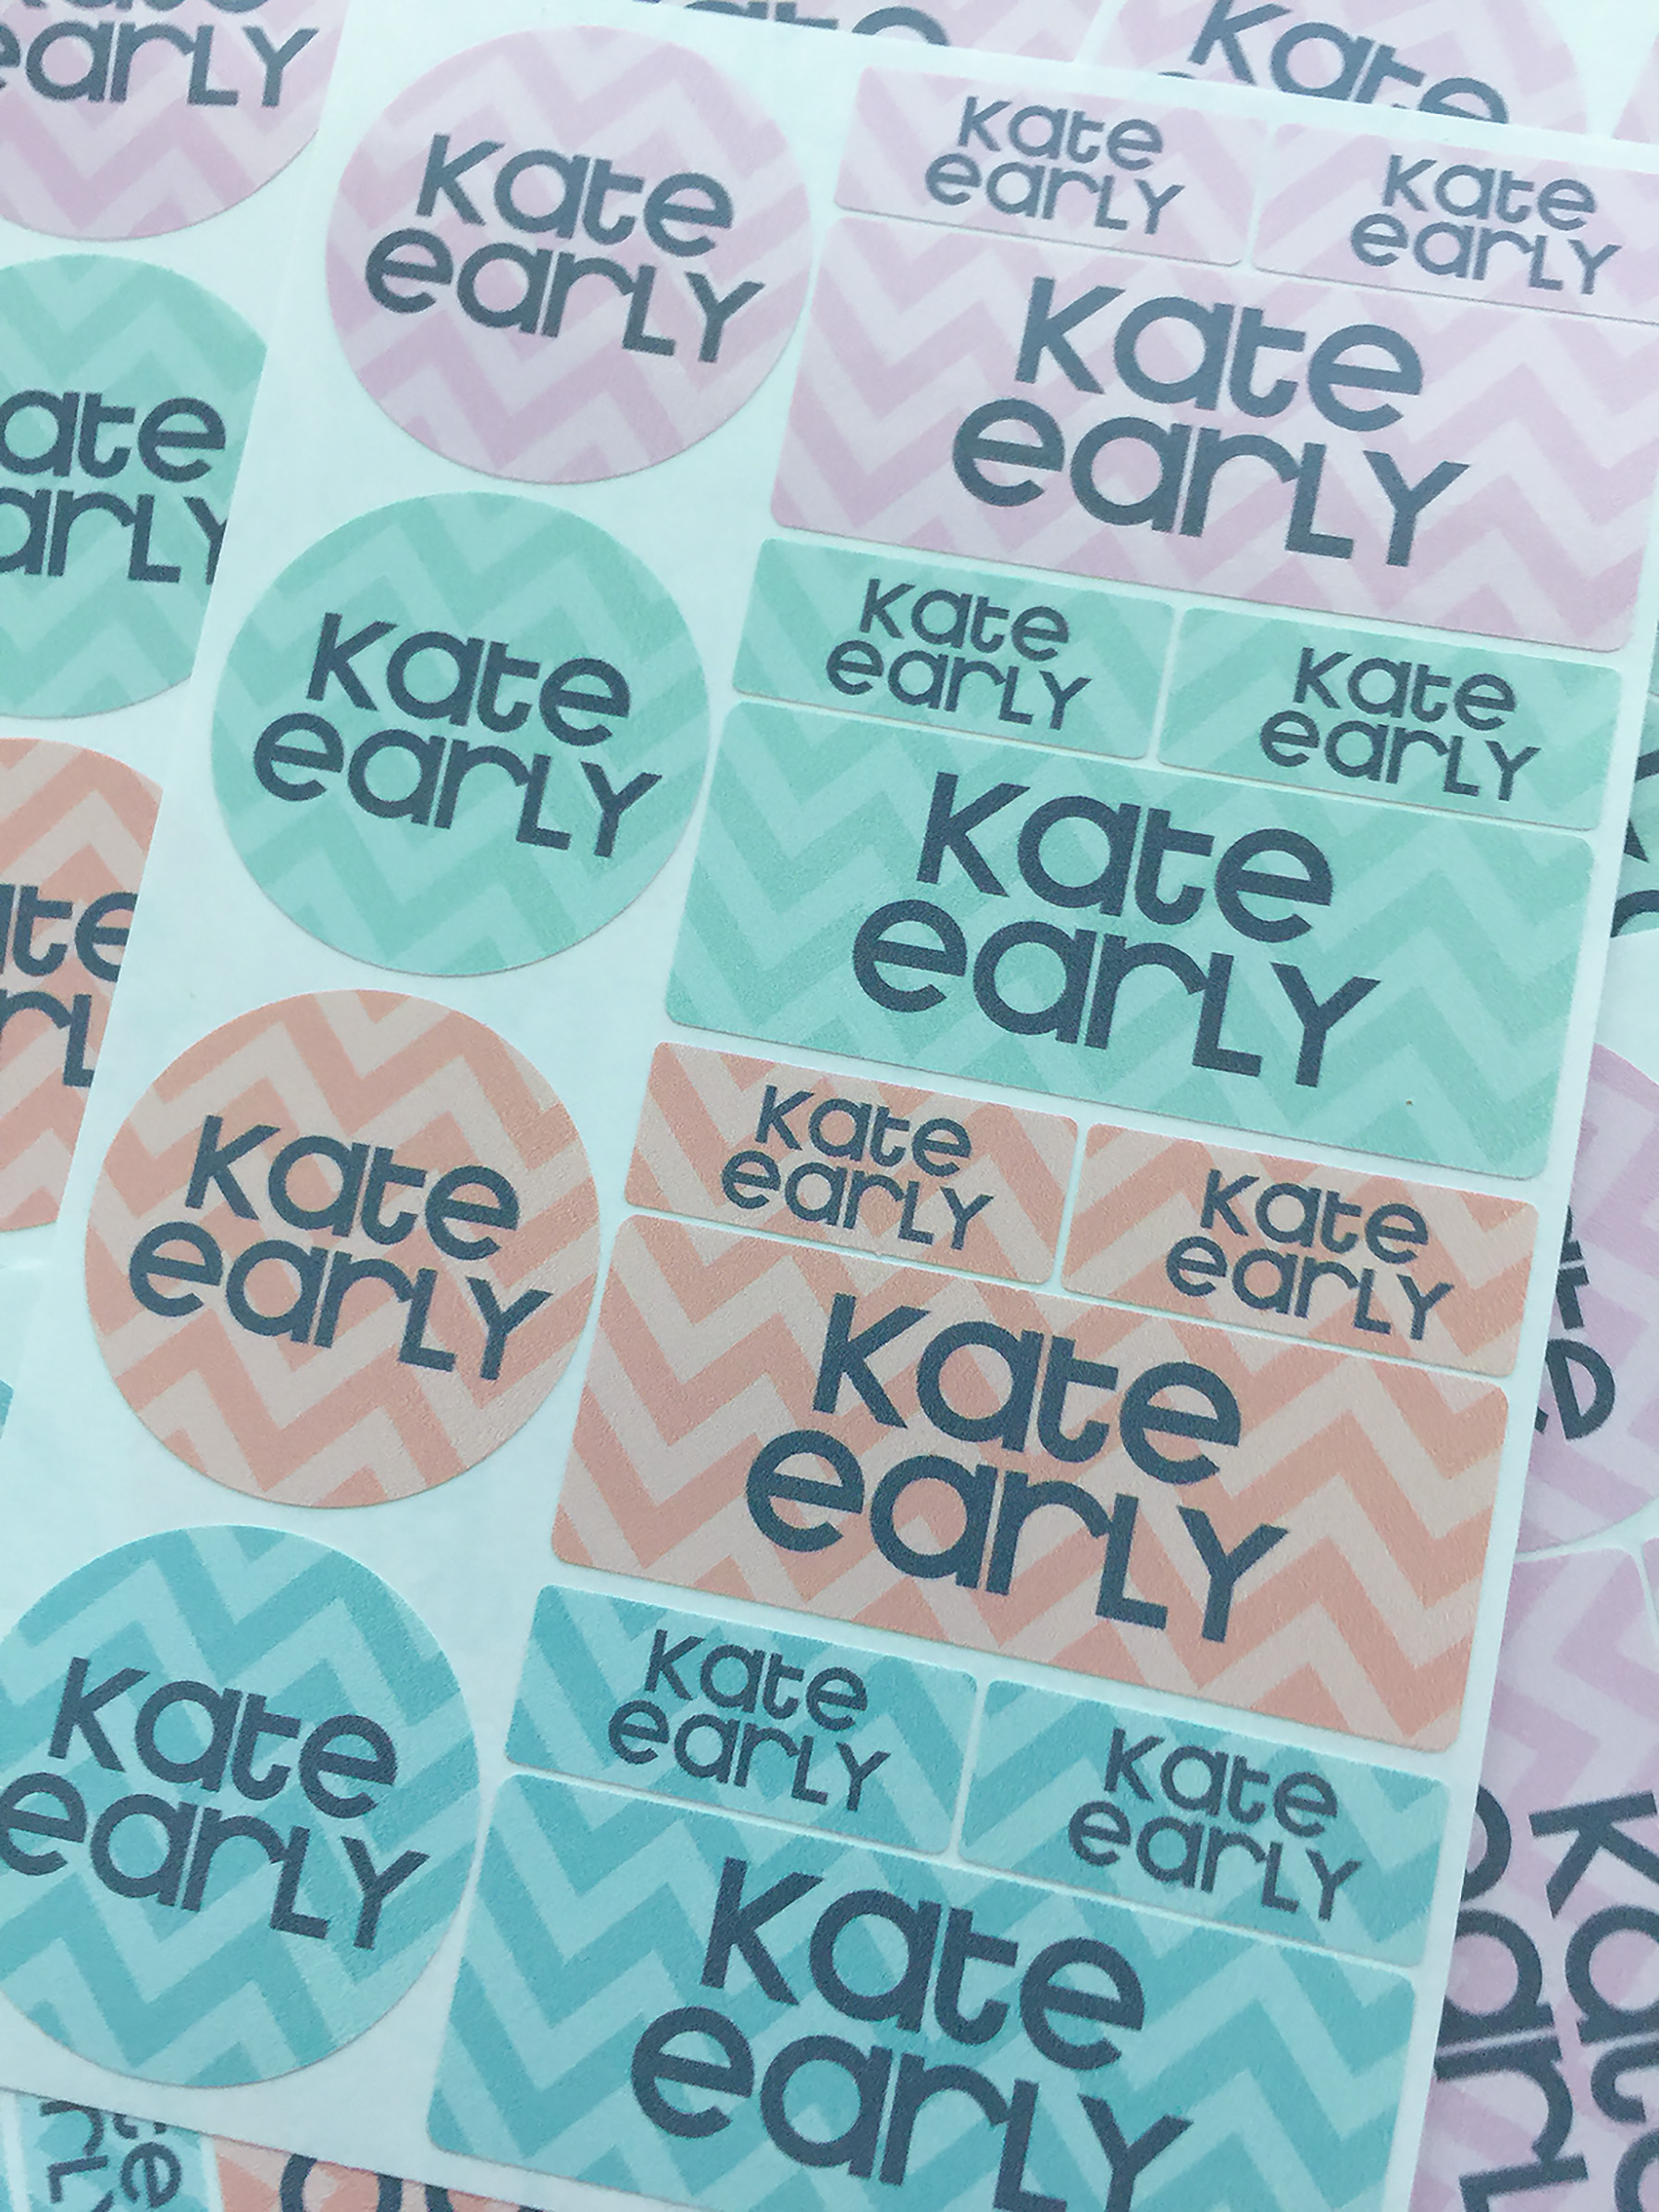 waterproof name label packs - set of 64 - CHEVRON PASTELS